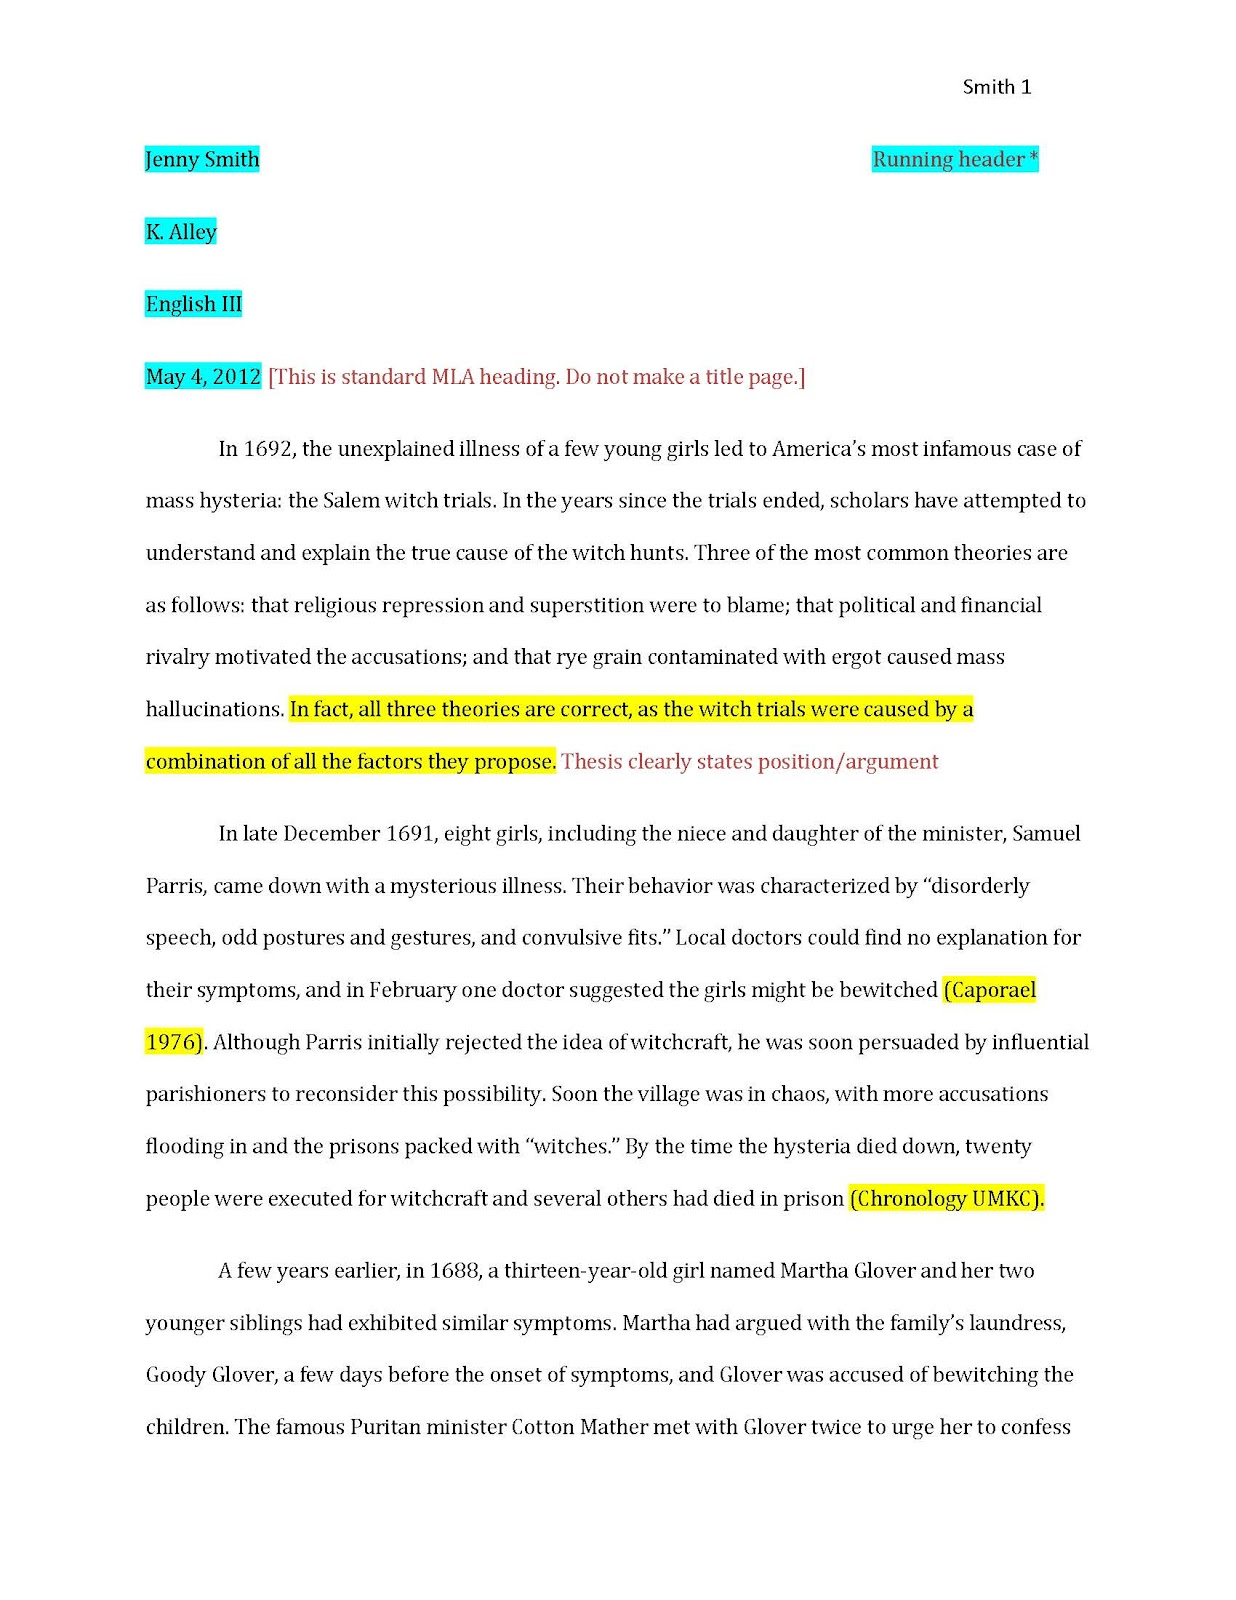 argumentative thesis statement generator Create a good thesis statement (see an example) and generate an outline (see an example) to use thesis builder once you've got a thesis statement.